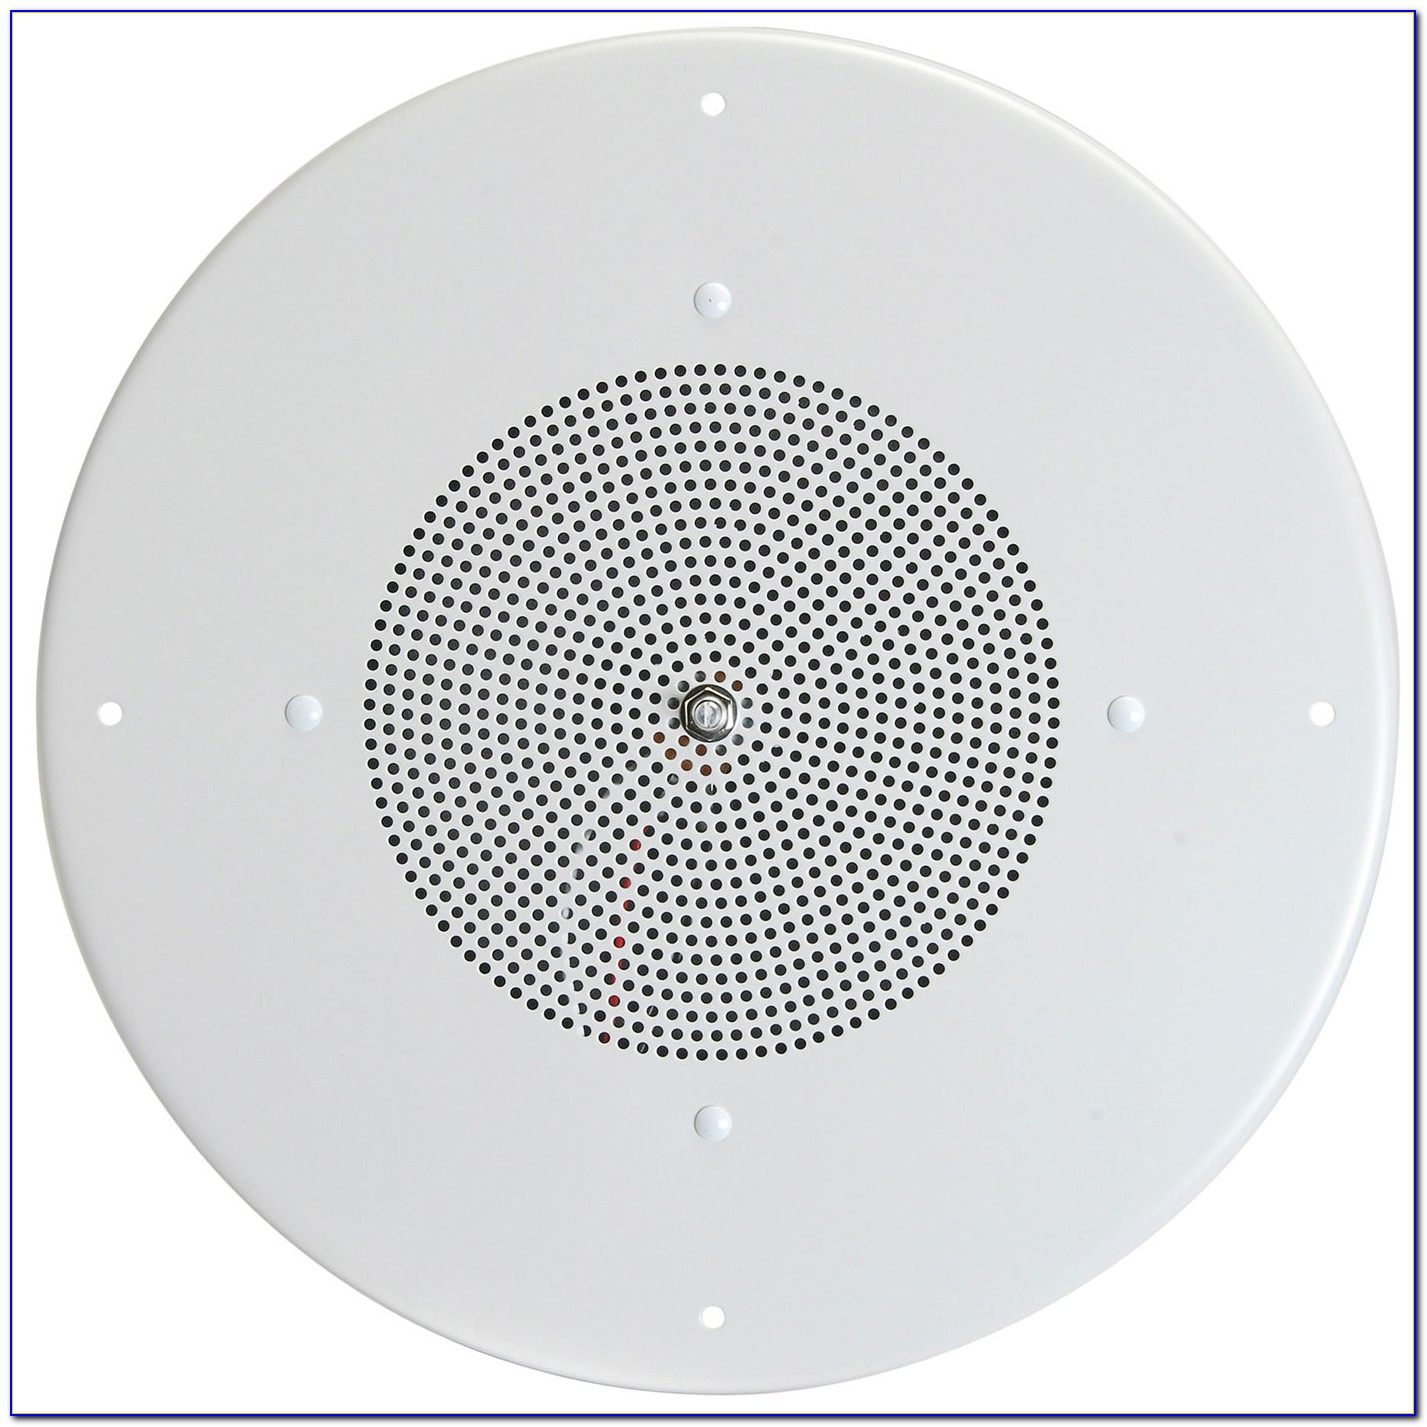 Ceiling Speaker With Remote Volume Control